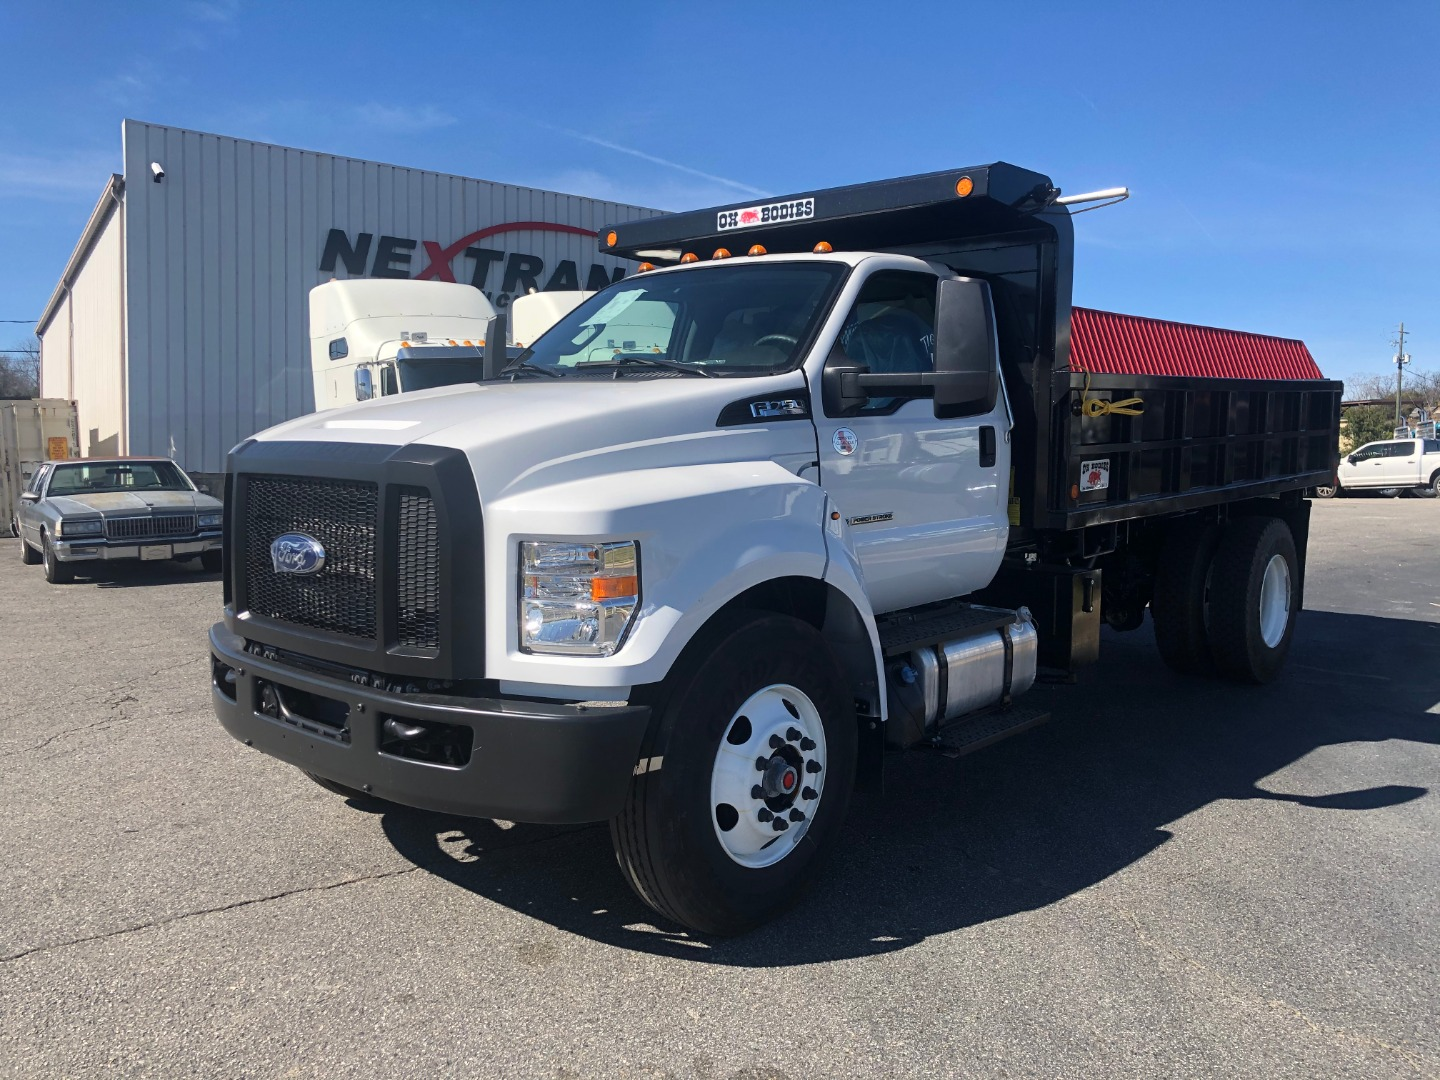 2019 Ford F-750 Regular Cab DRW 4x2, Ox Bodies Dump Body #F15960 - photo 1